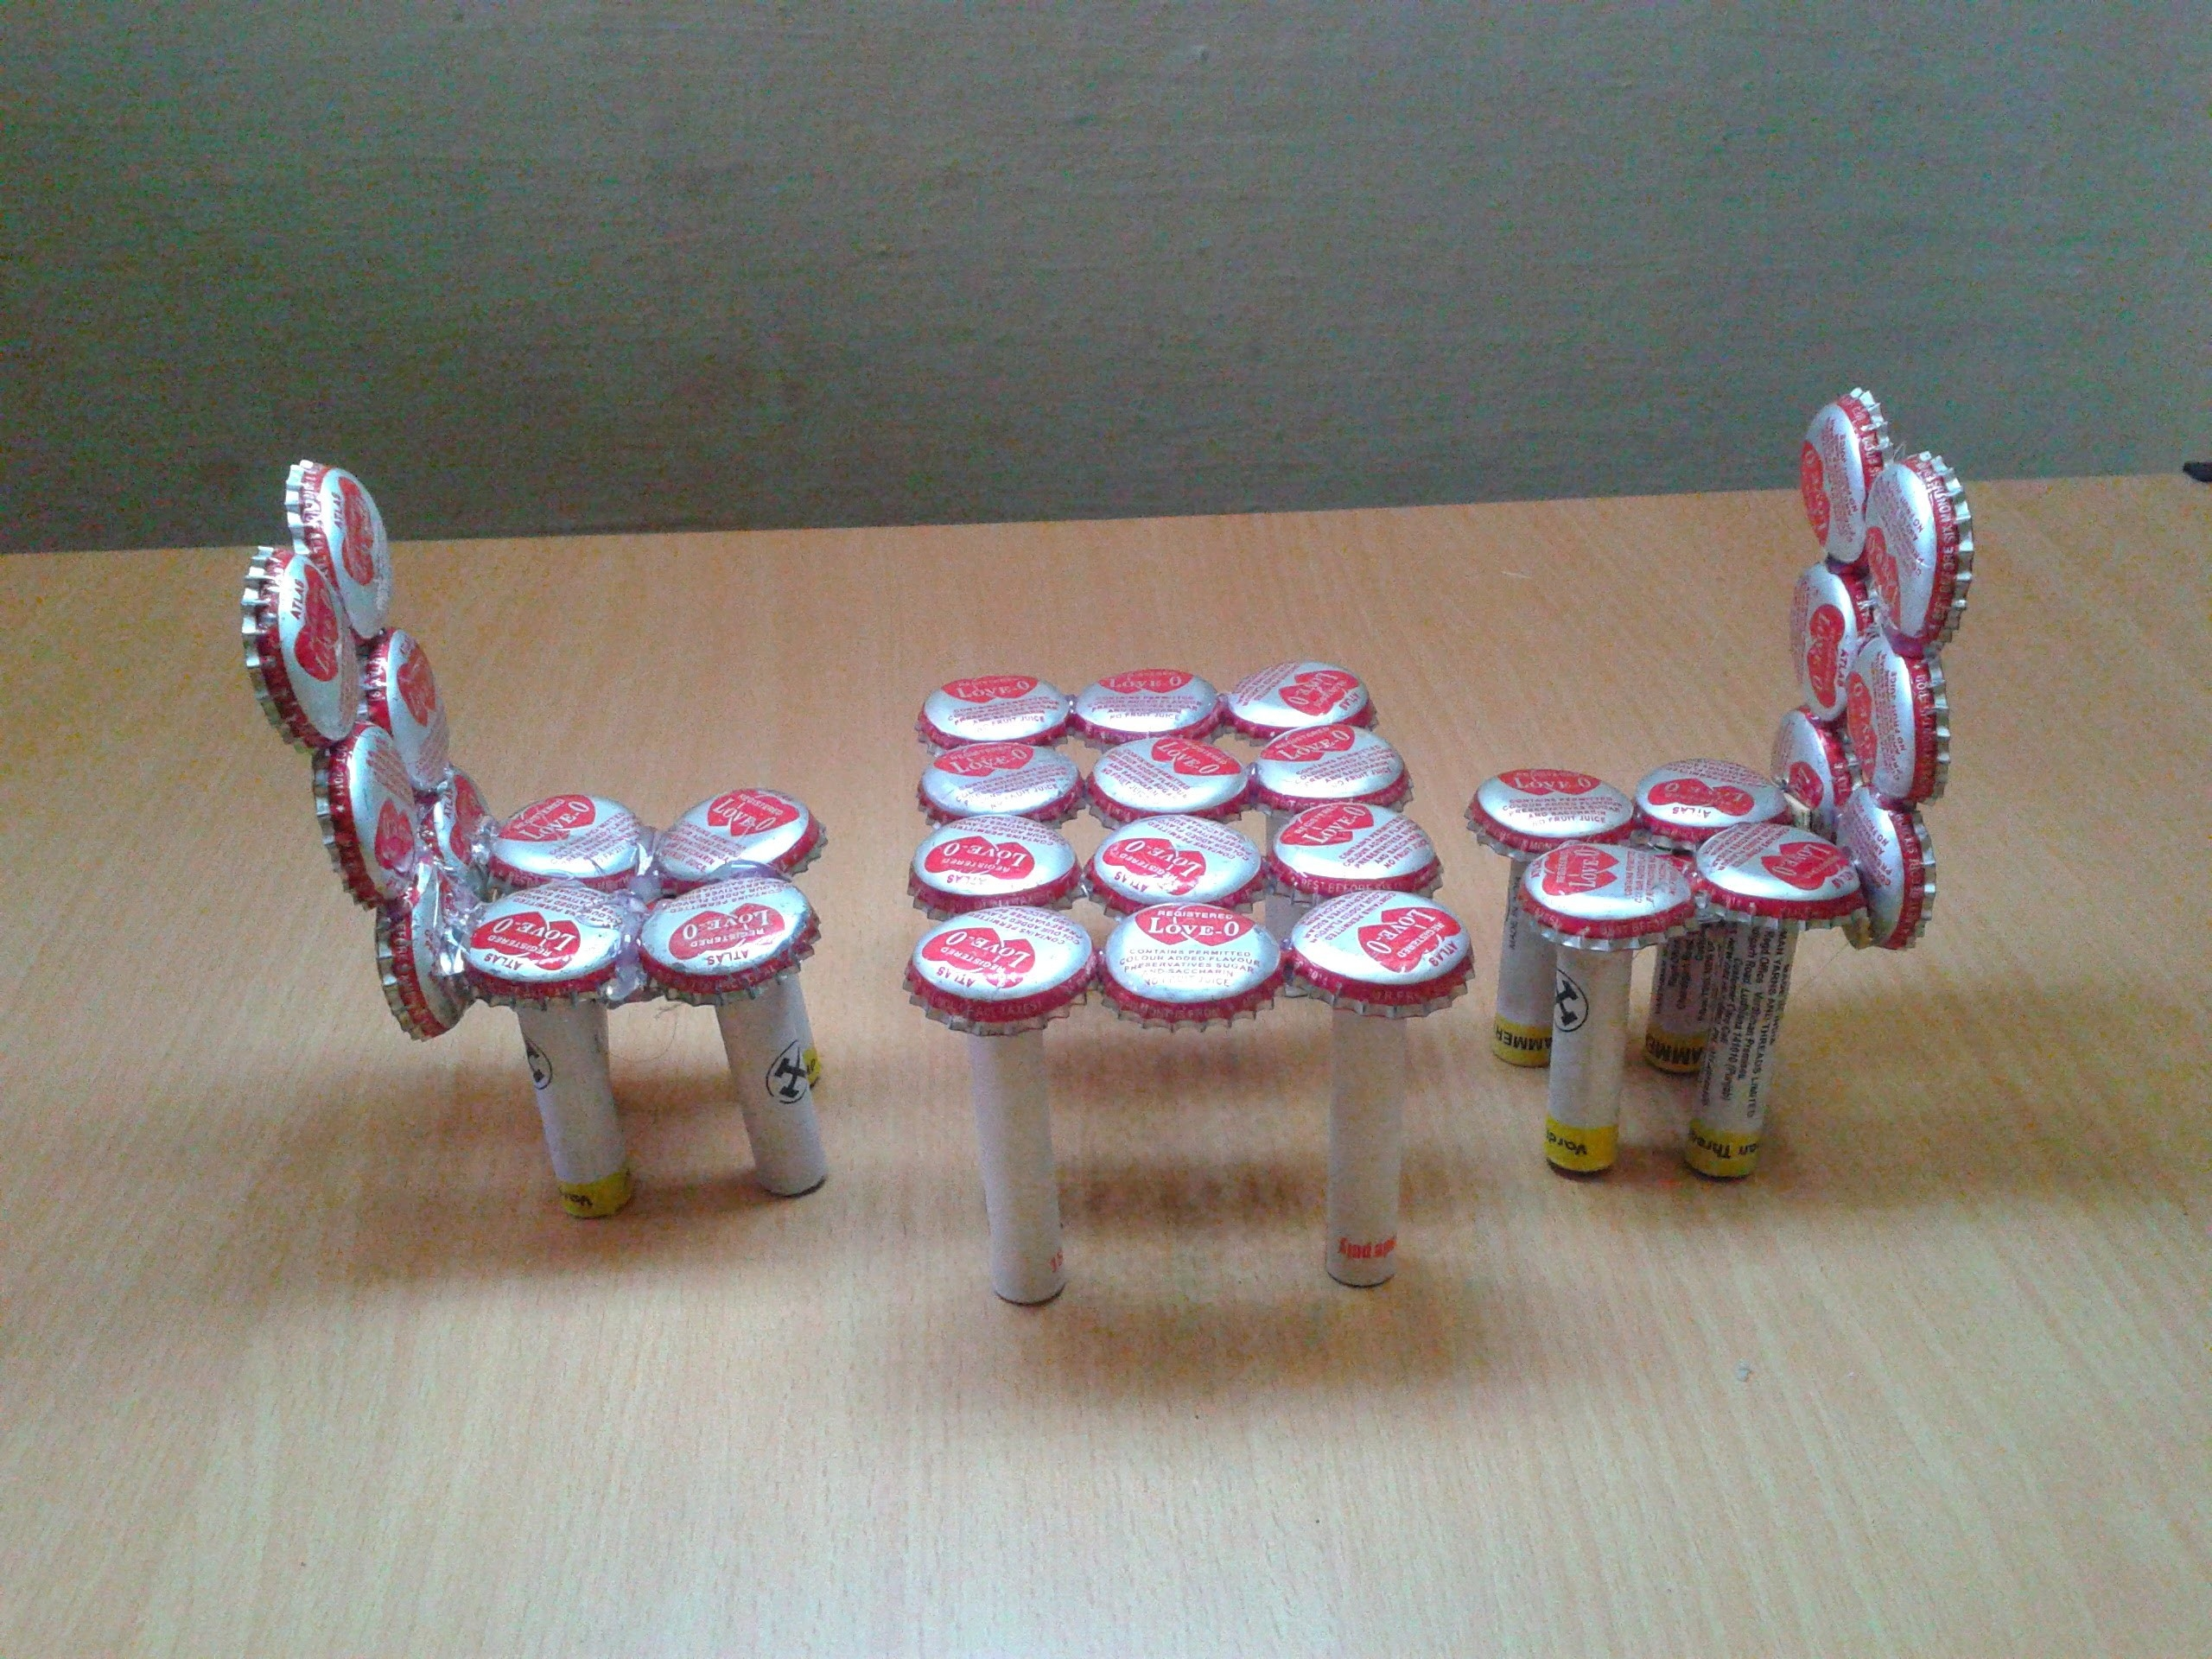 Craft Ideas Kids Waste Material Make Miniature Table Chairs - Home throughout Art And Craft Ideas From Waste Material For Kids 29250